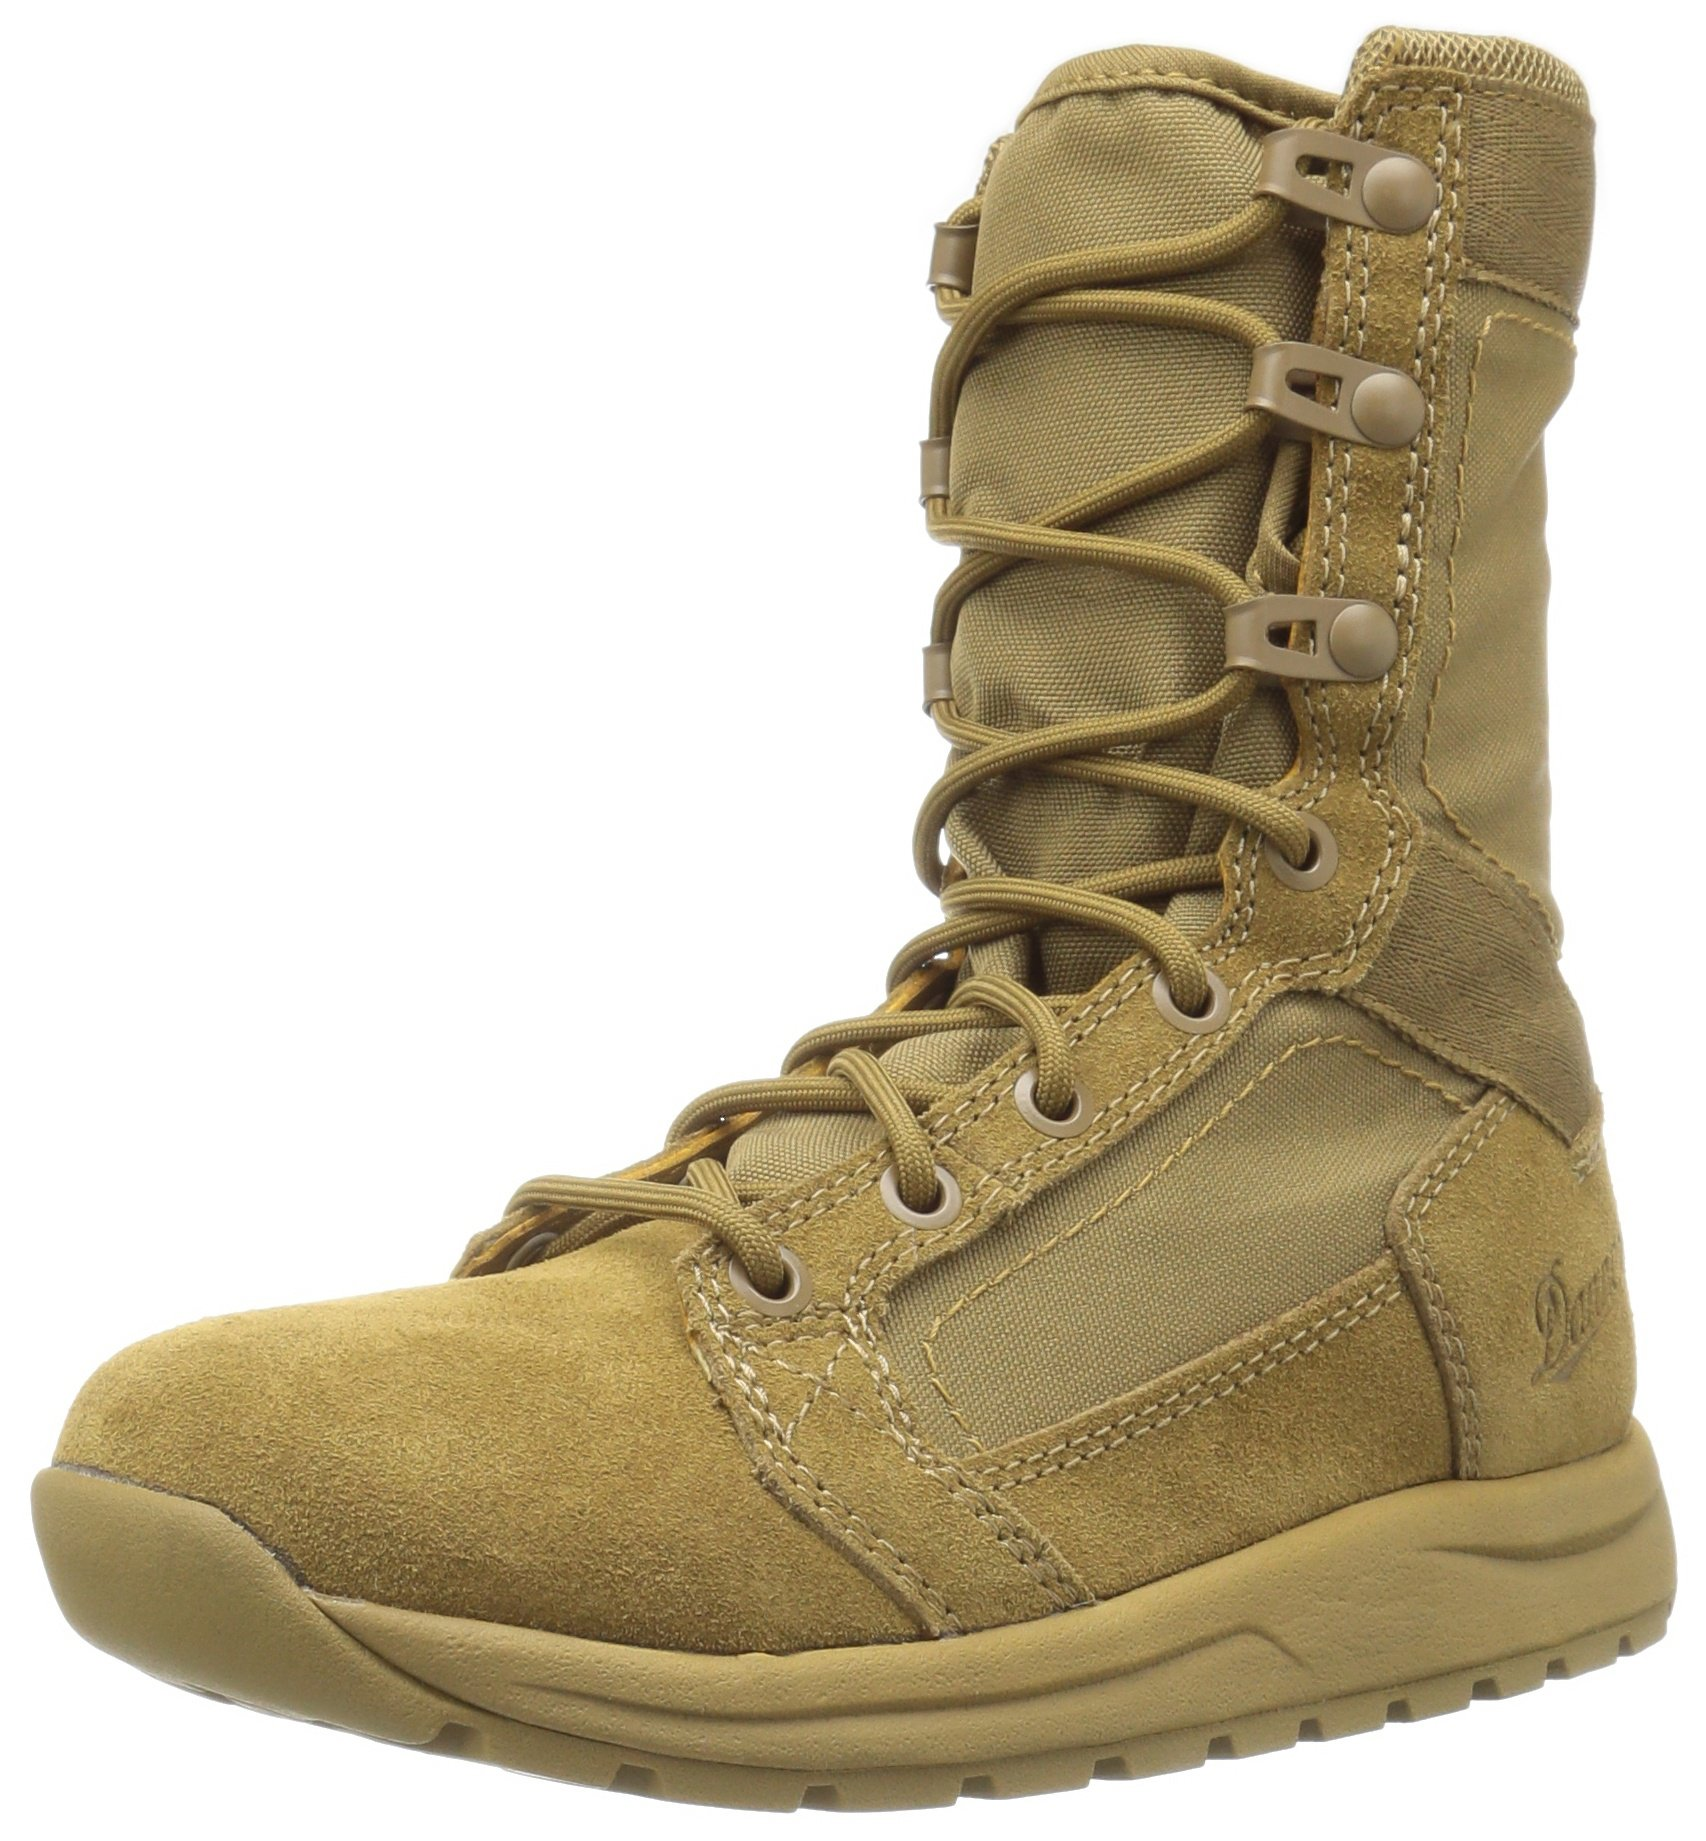 Danner Men's Tachyon 8 Inch Military and Tactical Boot, Coyote, 9 D US by Danner